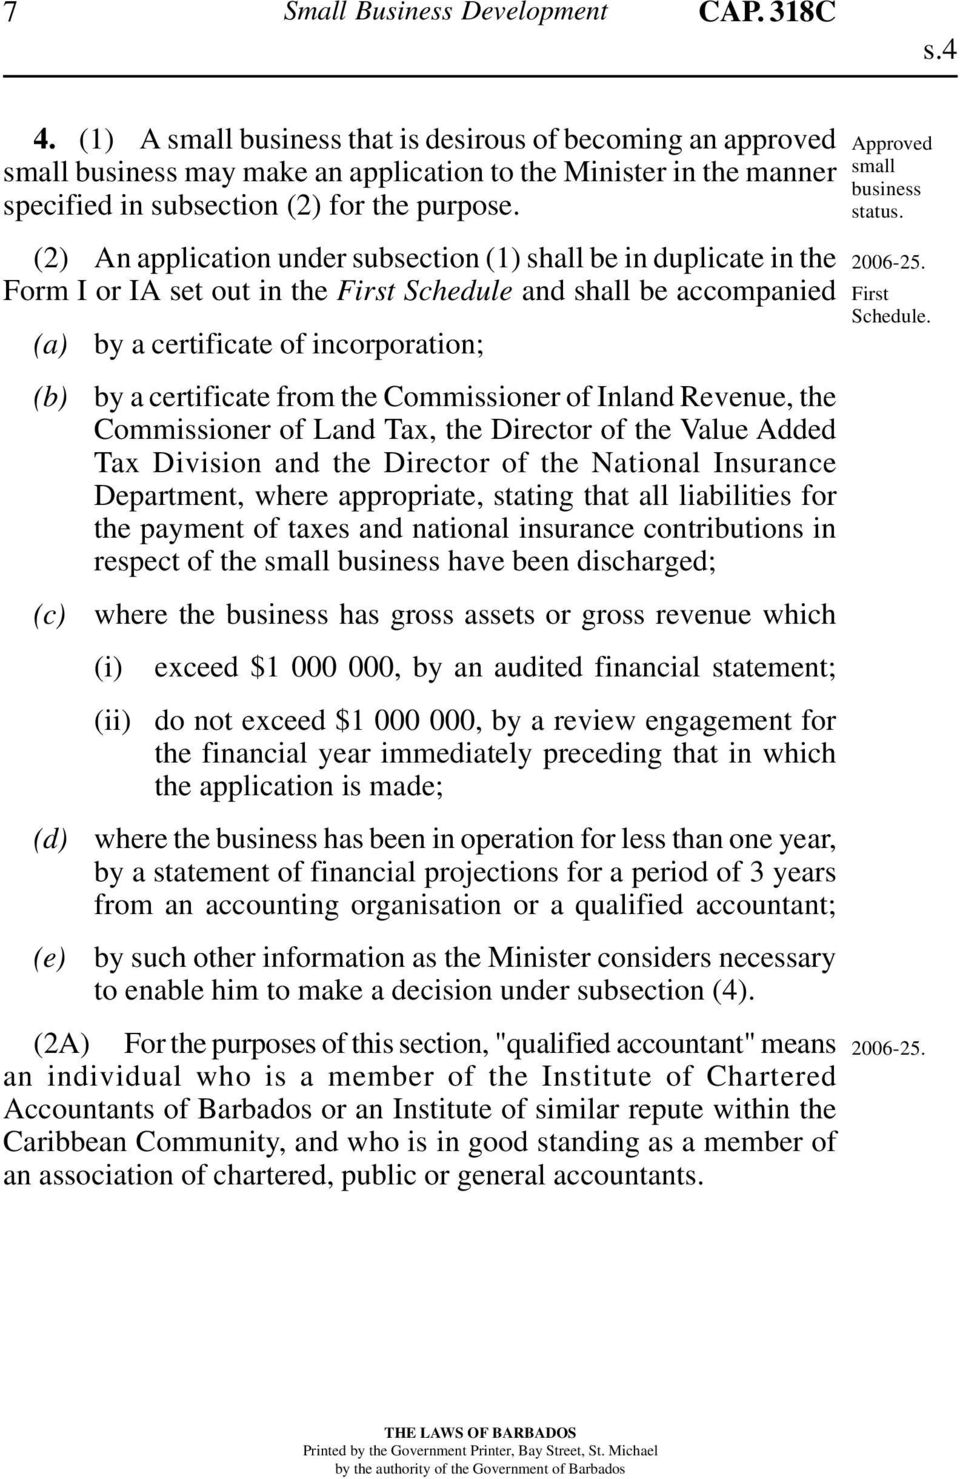 (2) An application under subsection (1) shall be in duplicate in the Form I or IA set out in the First Schedule and shall be accompanied (c) (d) (e) by a certificate of incorporation; by a